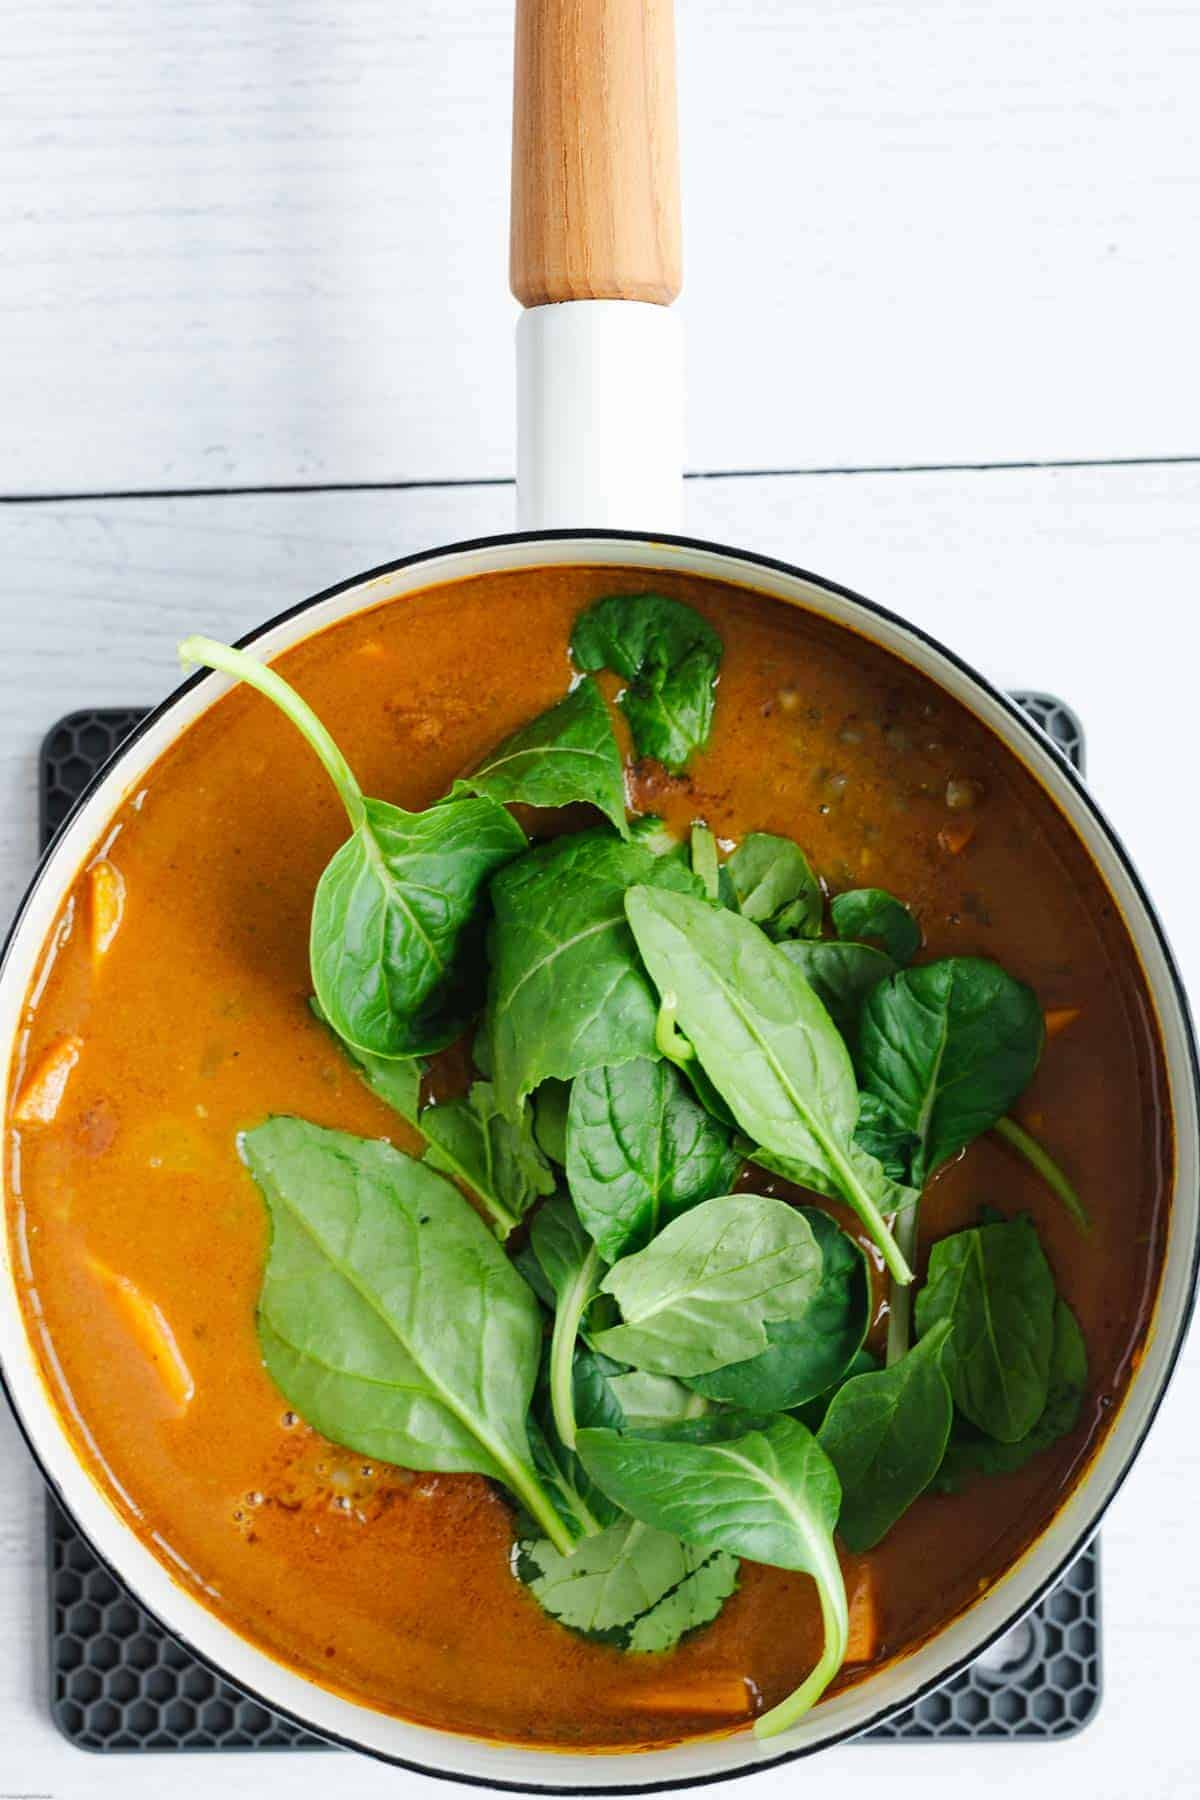 Adding the baby spinach to the curry.